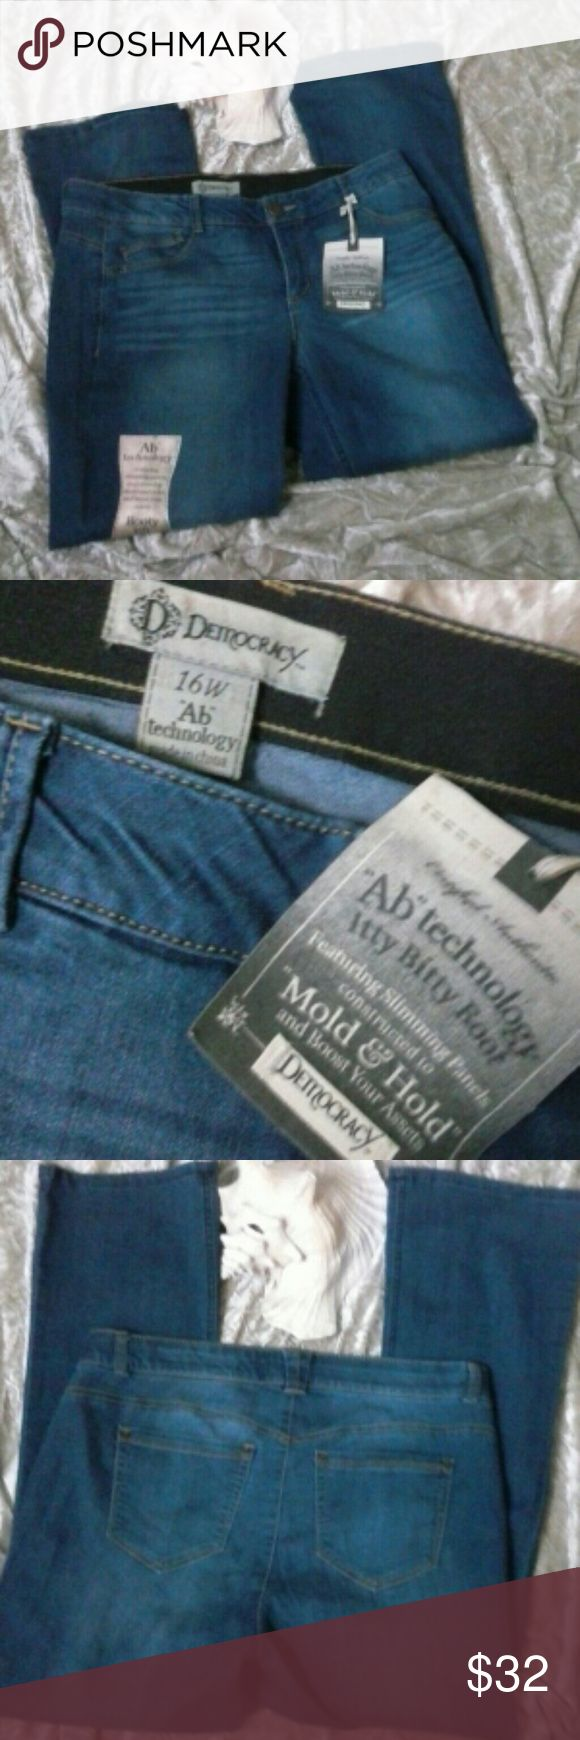 """NEW DEMOCRACY Slimming Mold & Hold Jeans 16W NEW with tags, Democracy AB Technology"""" Itty Bitty Boot"""" featuring slimming panels constructed to """"Mold & Hold"""" and """"boost your assets"""" 5 pocket Jeans Measures 19"""" across top, rise approx 9"""", Inseam 31"""". Feel free to ask questions. Thanks for stopping by! Democracy Jeans"""